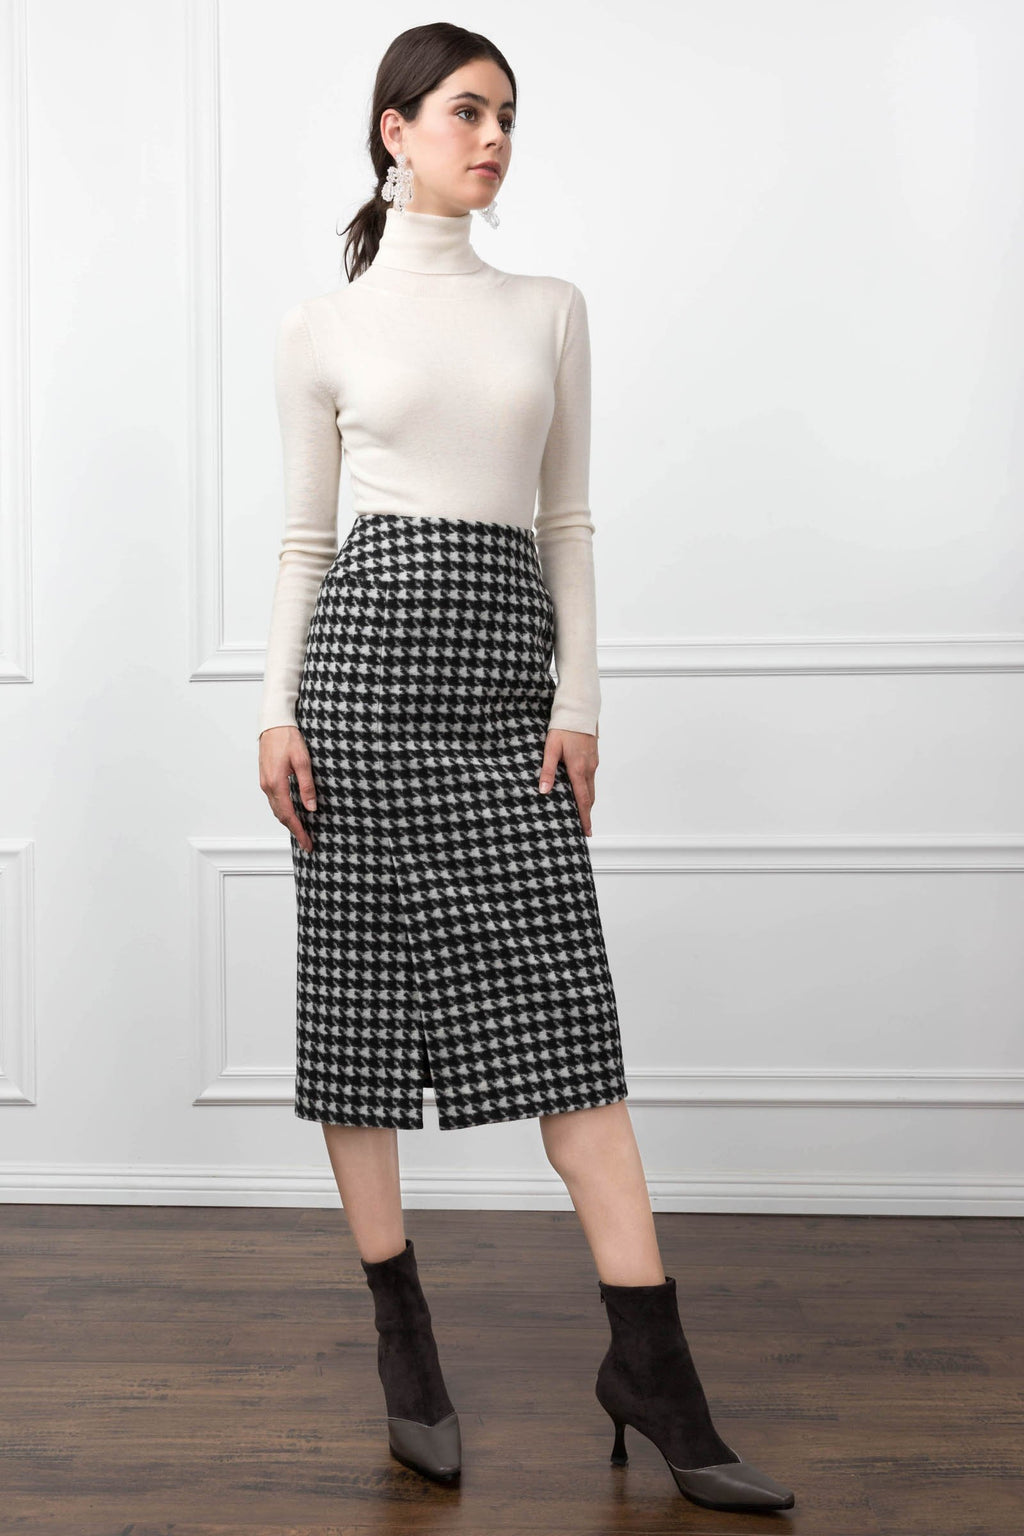 Aubrey Skirt in Skirts by J.ING - an L.A based women's fashion line